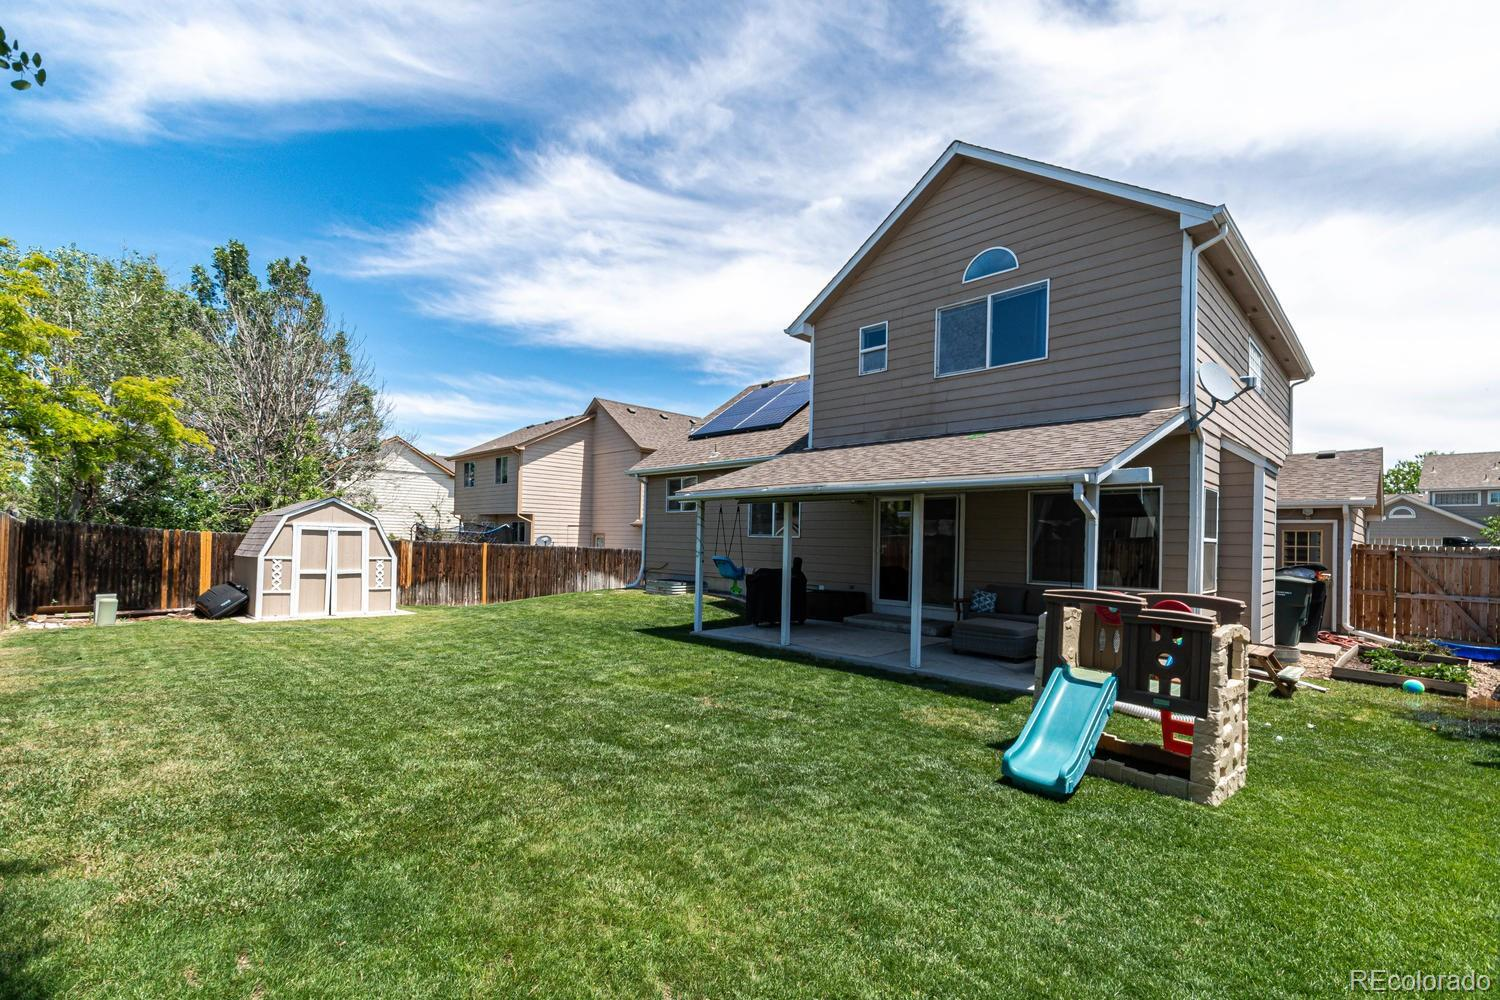 MLS# 2177669 - 29 - 12115 Josephine Street, Thornton, CO 80241